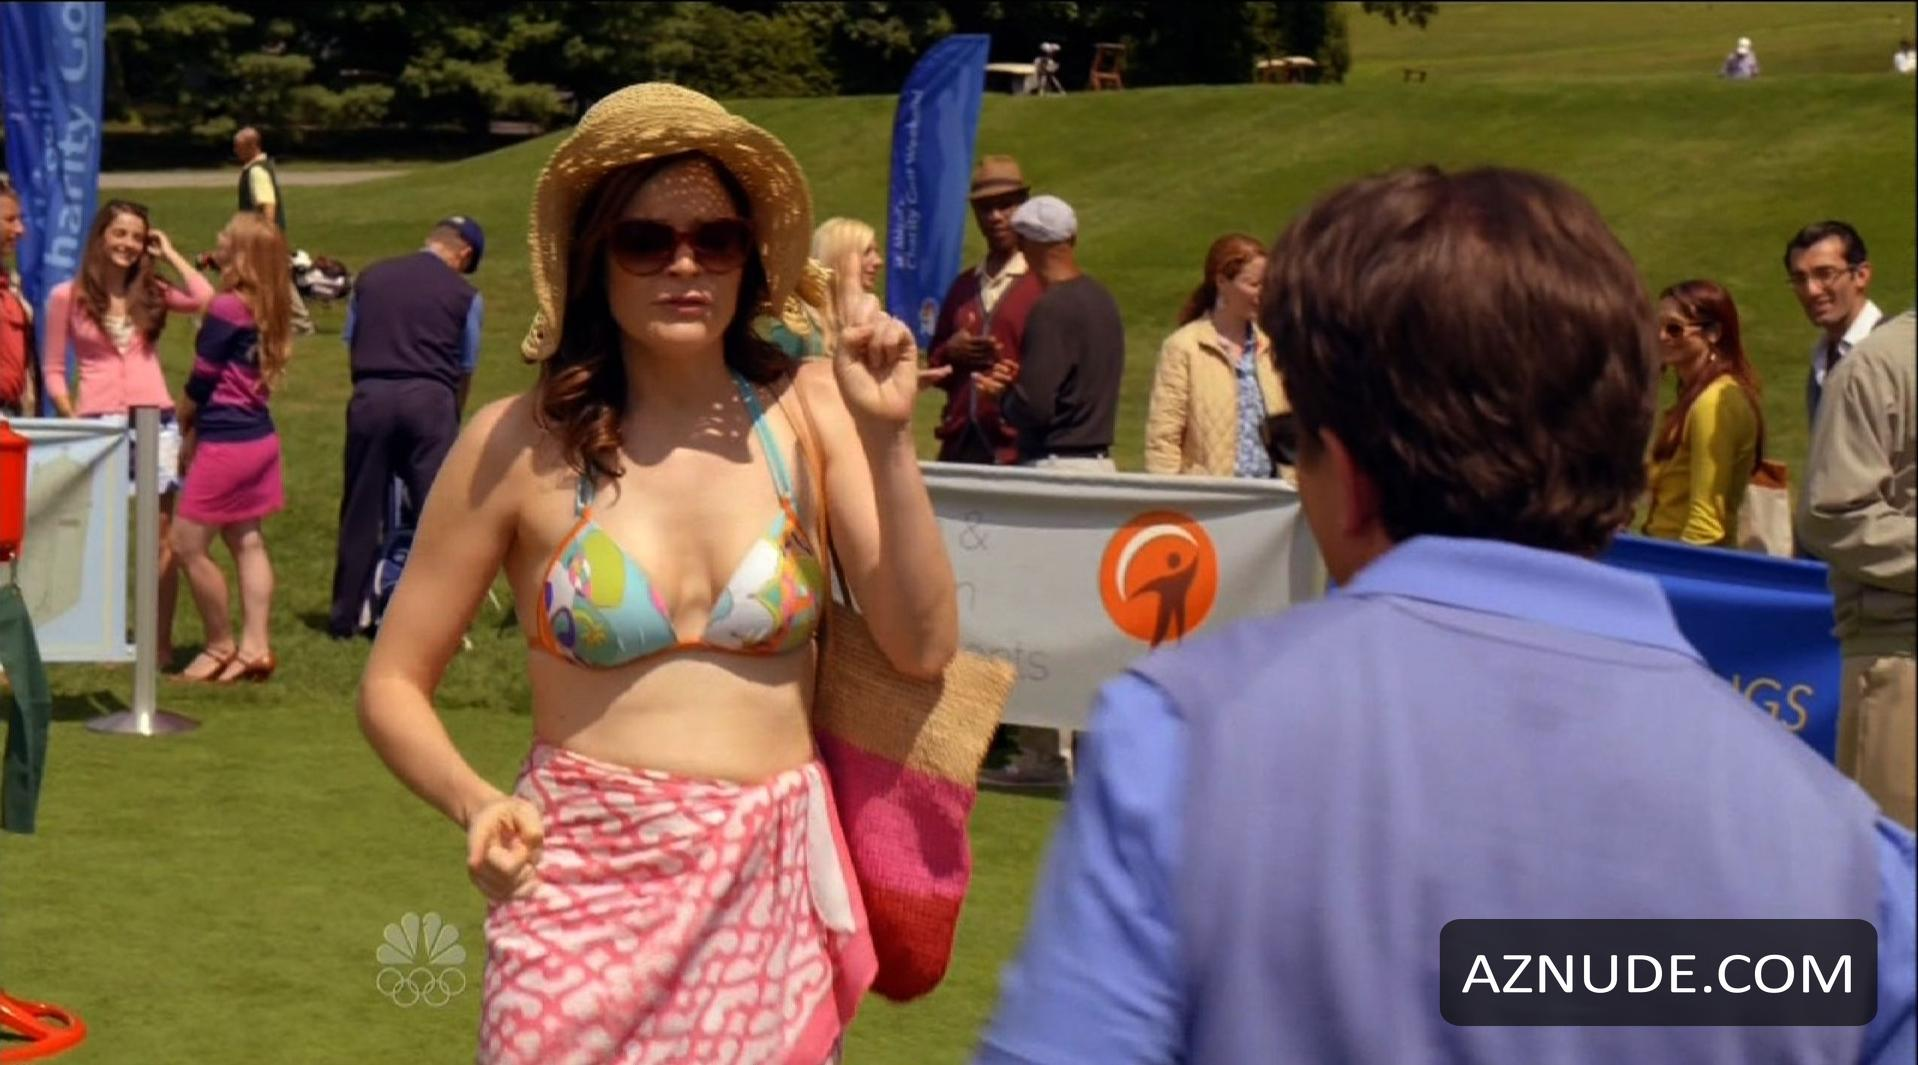 Lizzy caplan masters of sex 07 - 1 part 3